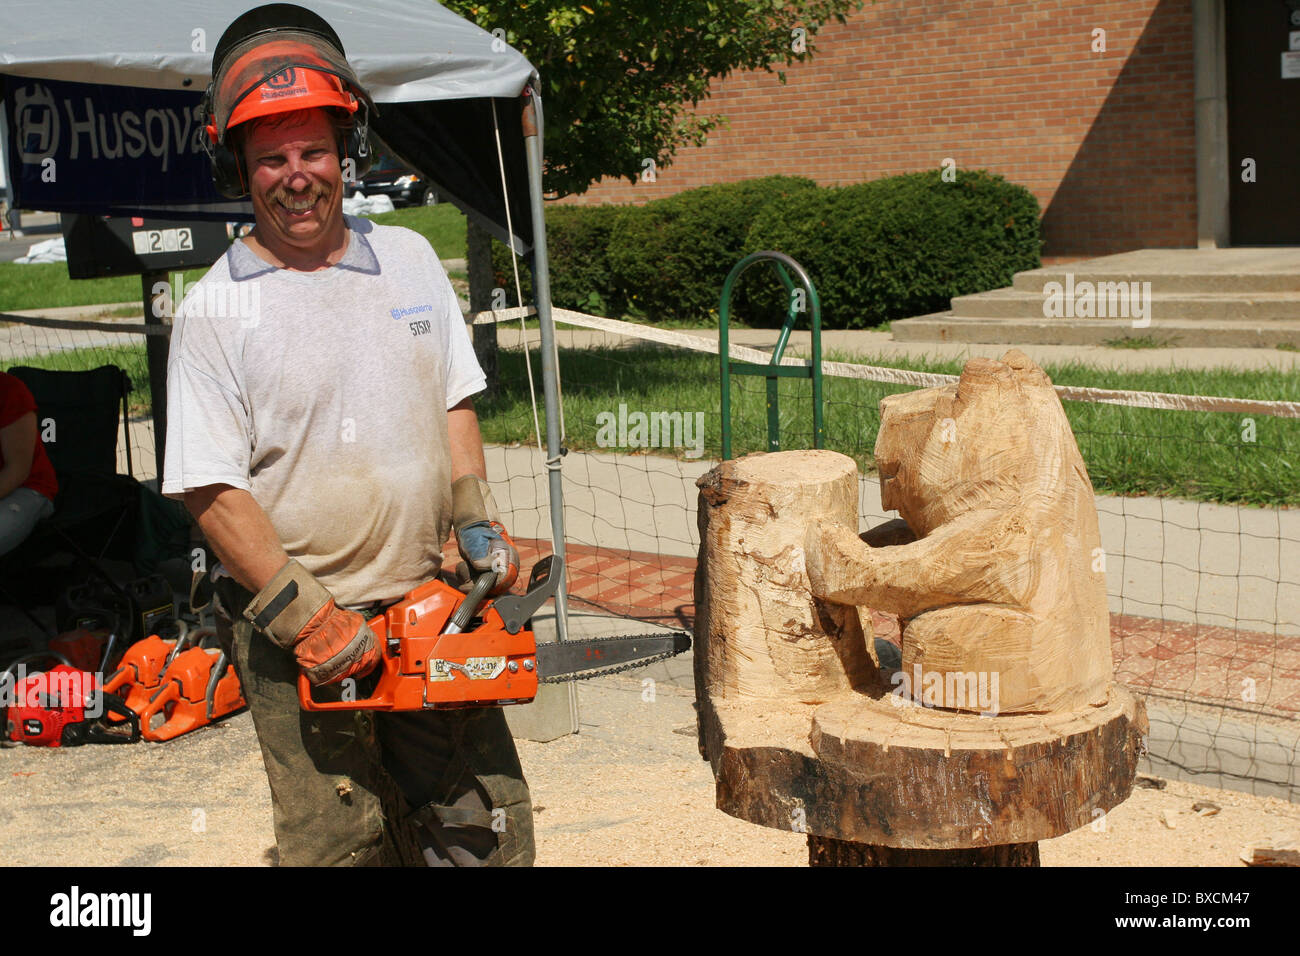 Impressions In Wood. Chainsaw sculpturing by Keith Maxwell. - Stock Image